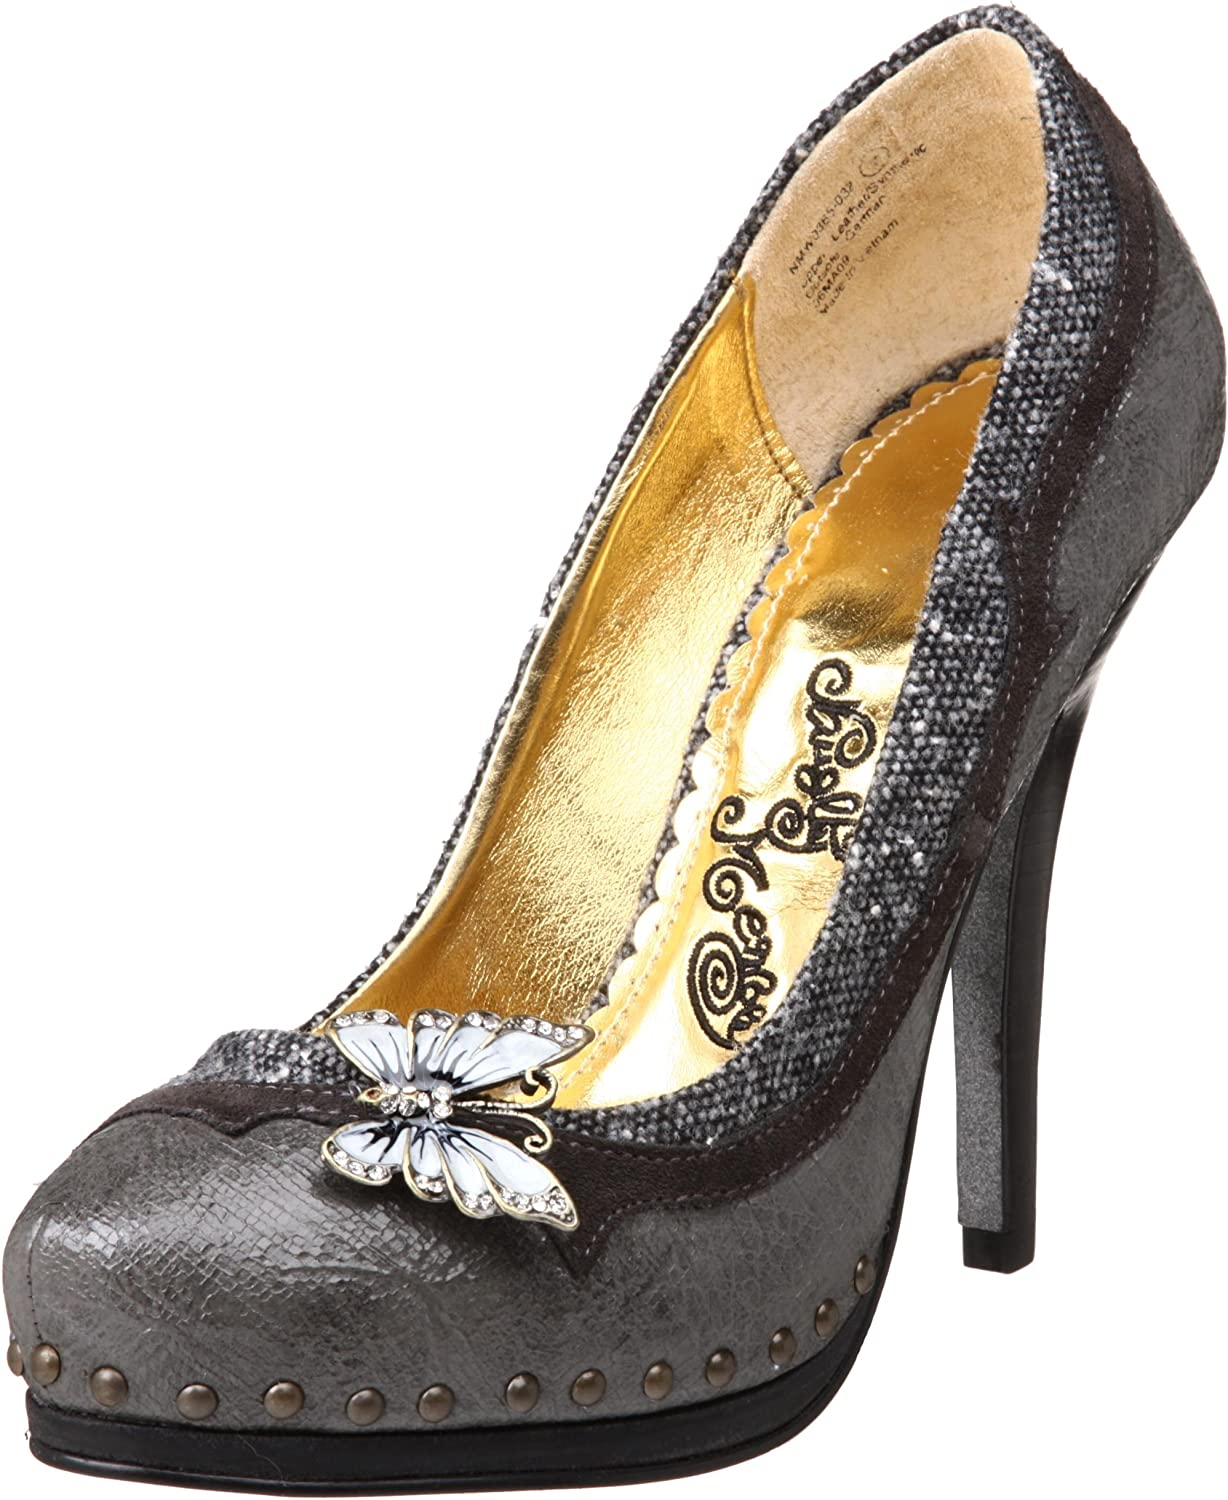 Naughty Monkey Women's Pretty Pump Tree Inventory cleanup selling All stores are sold sale